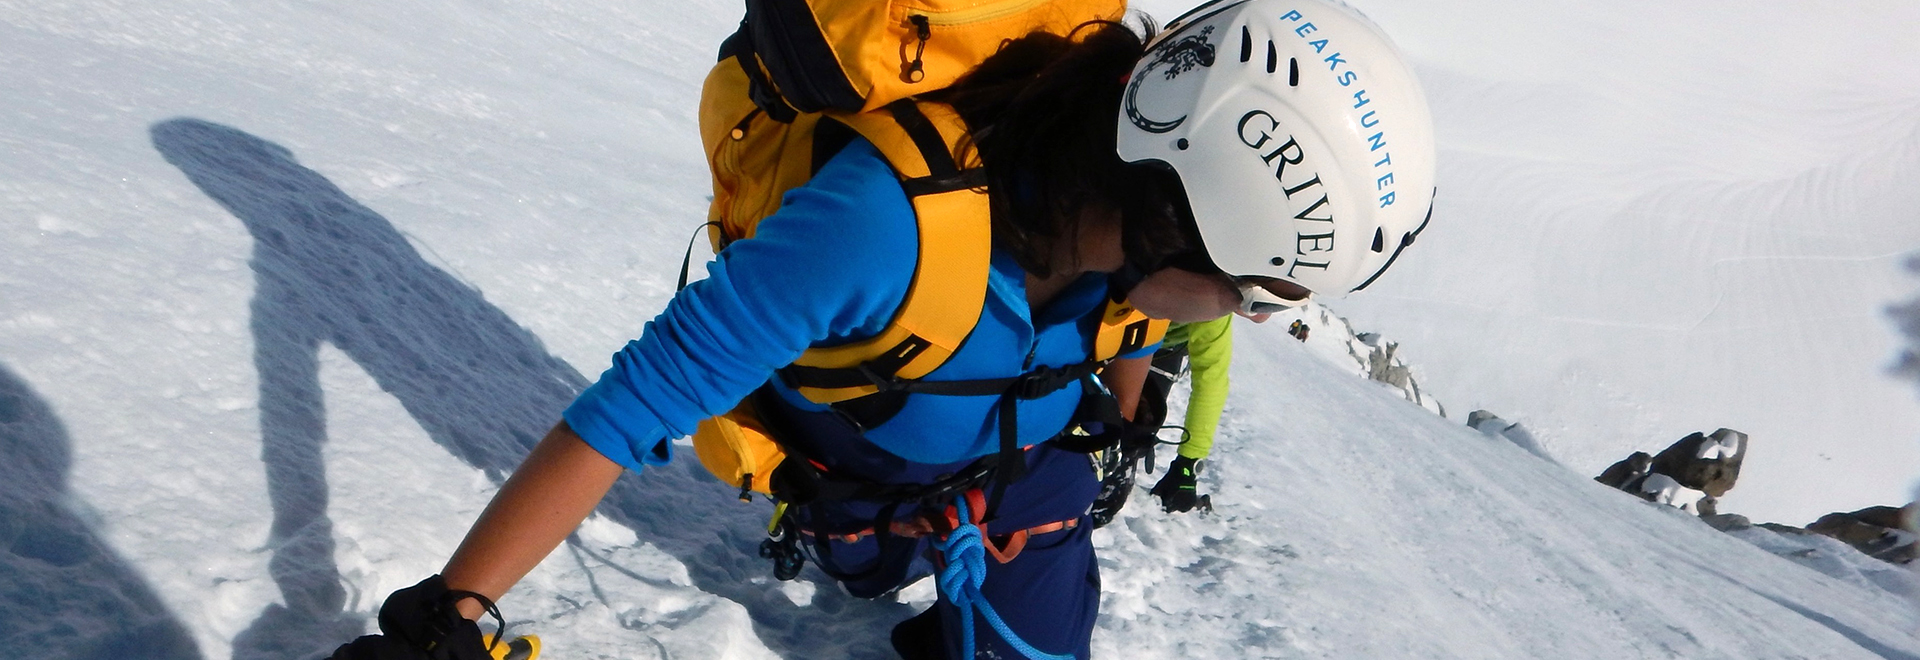 Tour Ronde - North Face